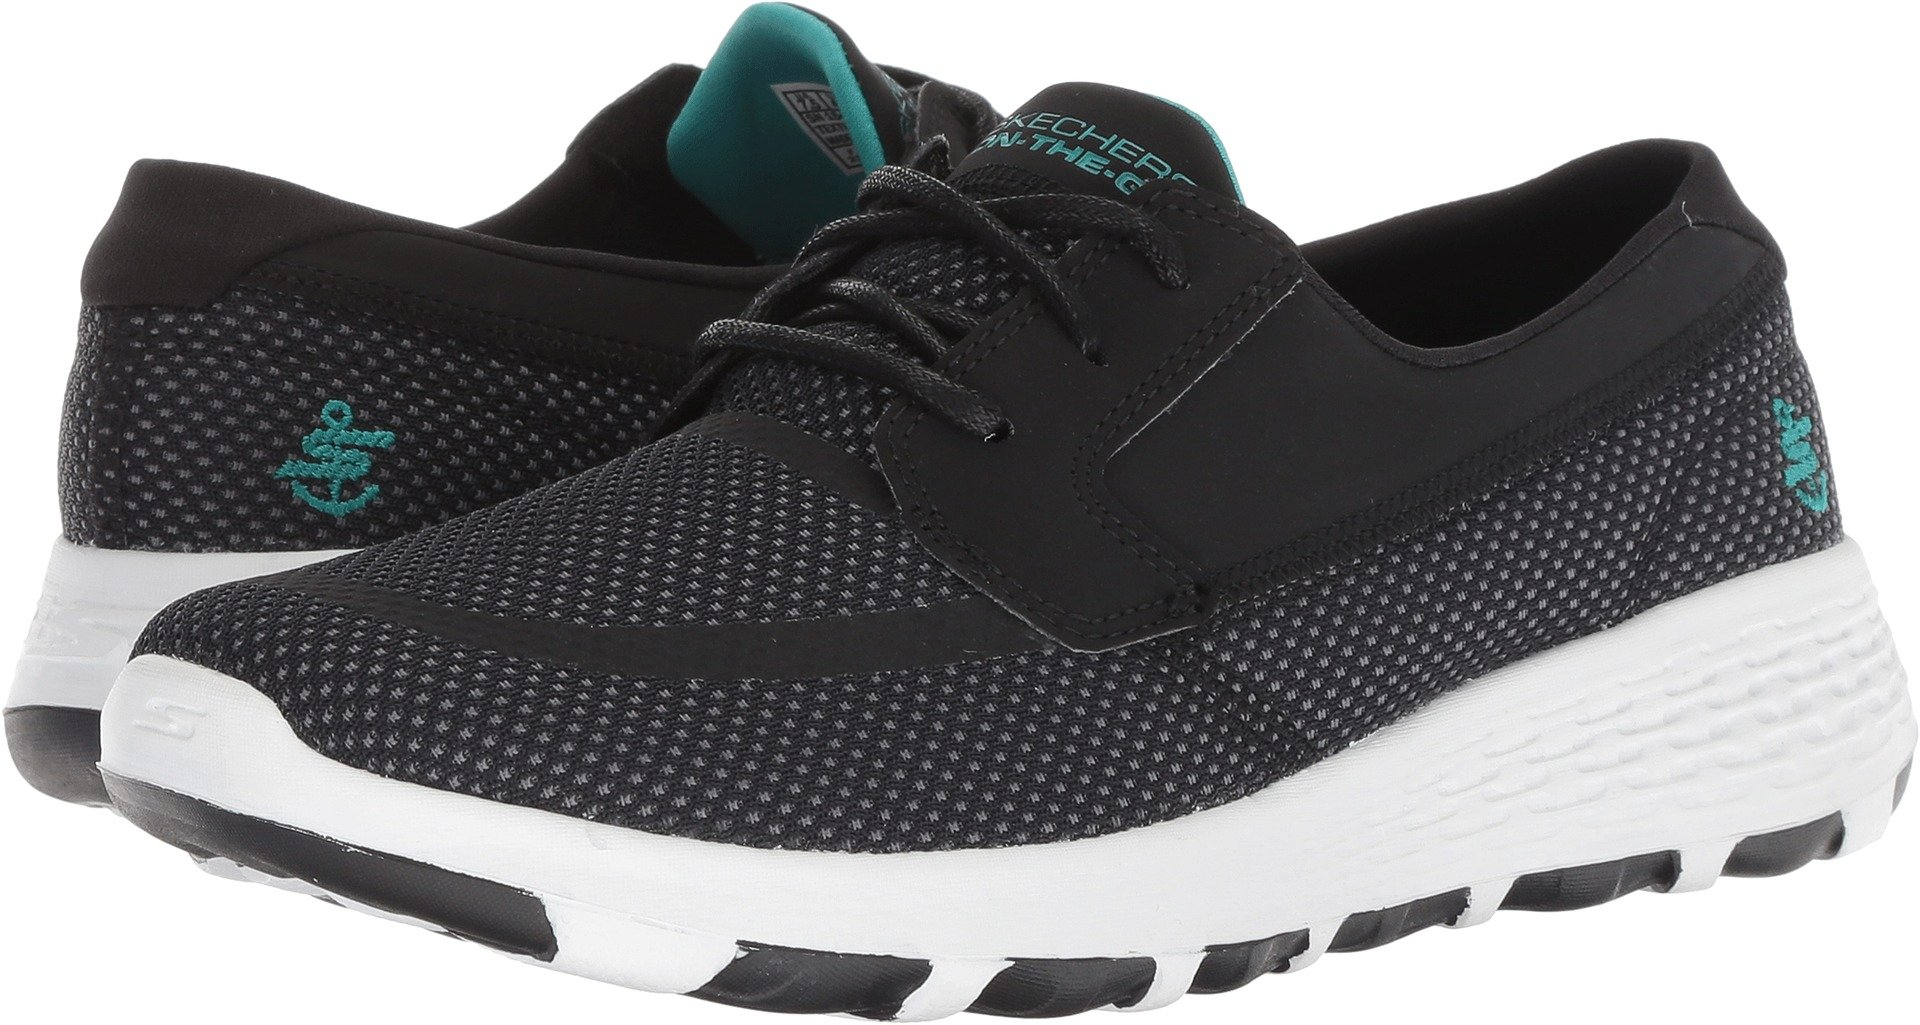 Skechers Performance Women's On-The-Go Boat Cool Black/Turquoise 6 B US